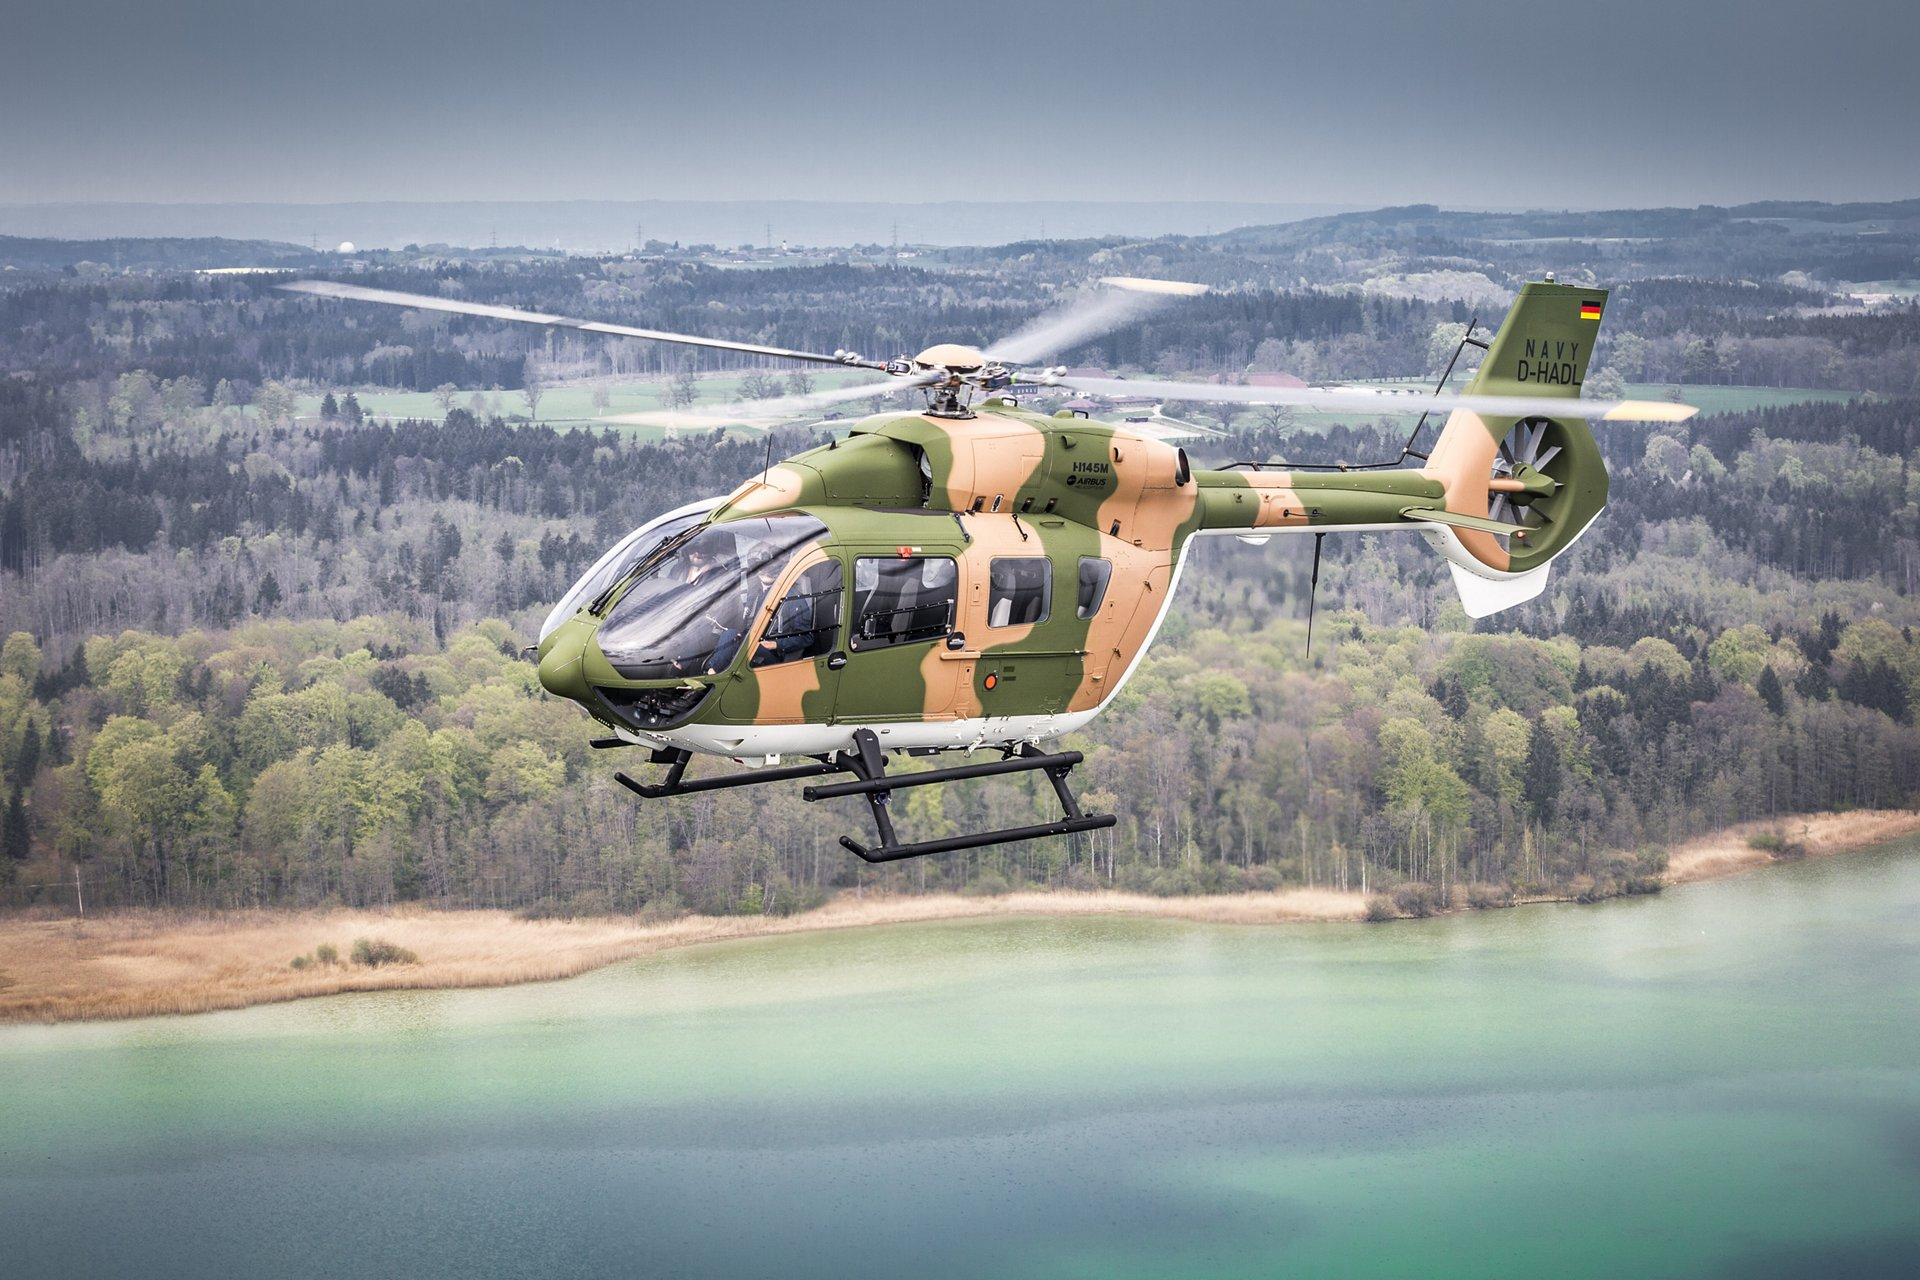 The H145M is the answer to today's most demanding operations for which high versatility, high performance and cost effectiveness are needed.